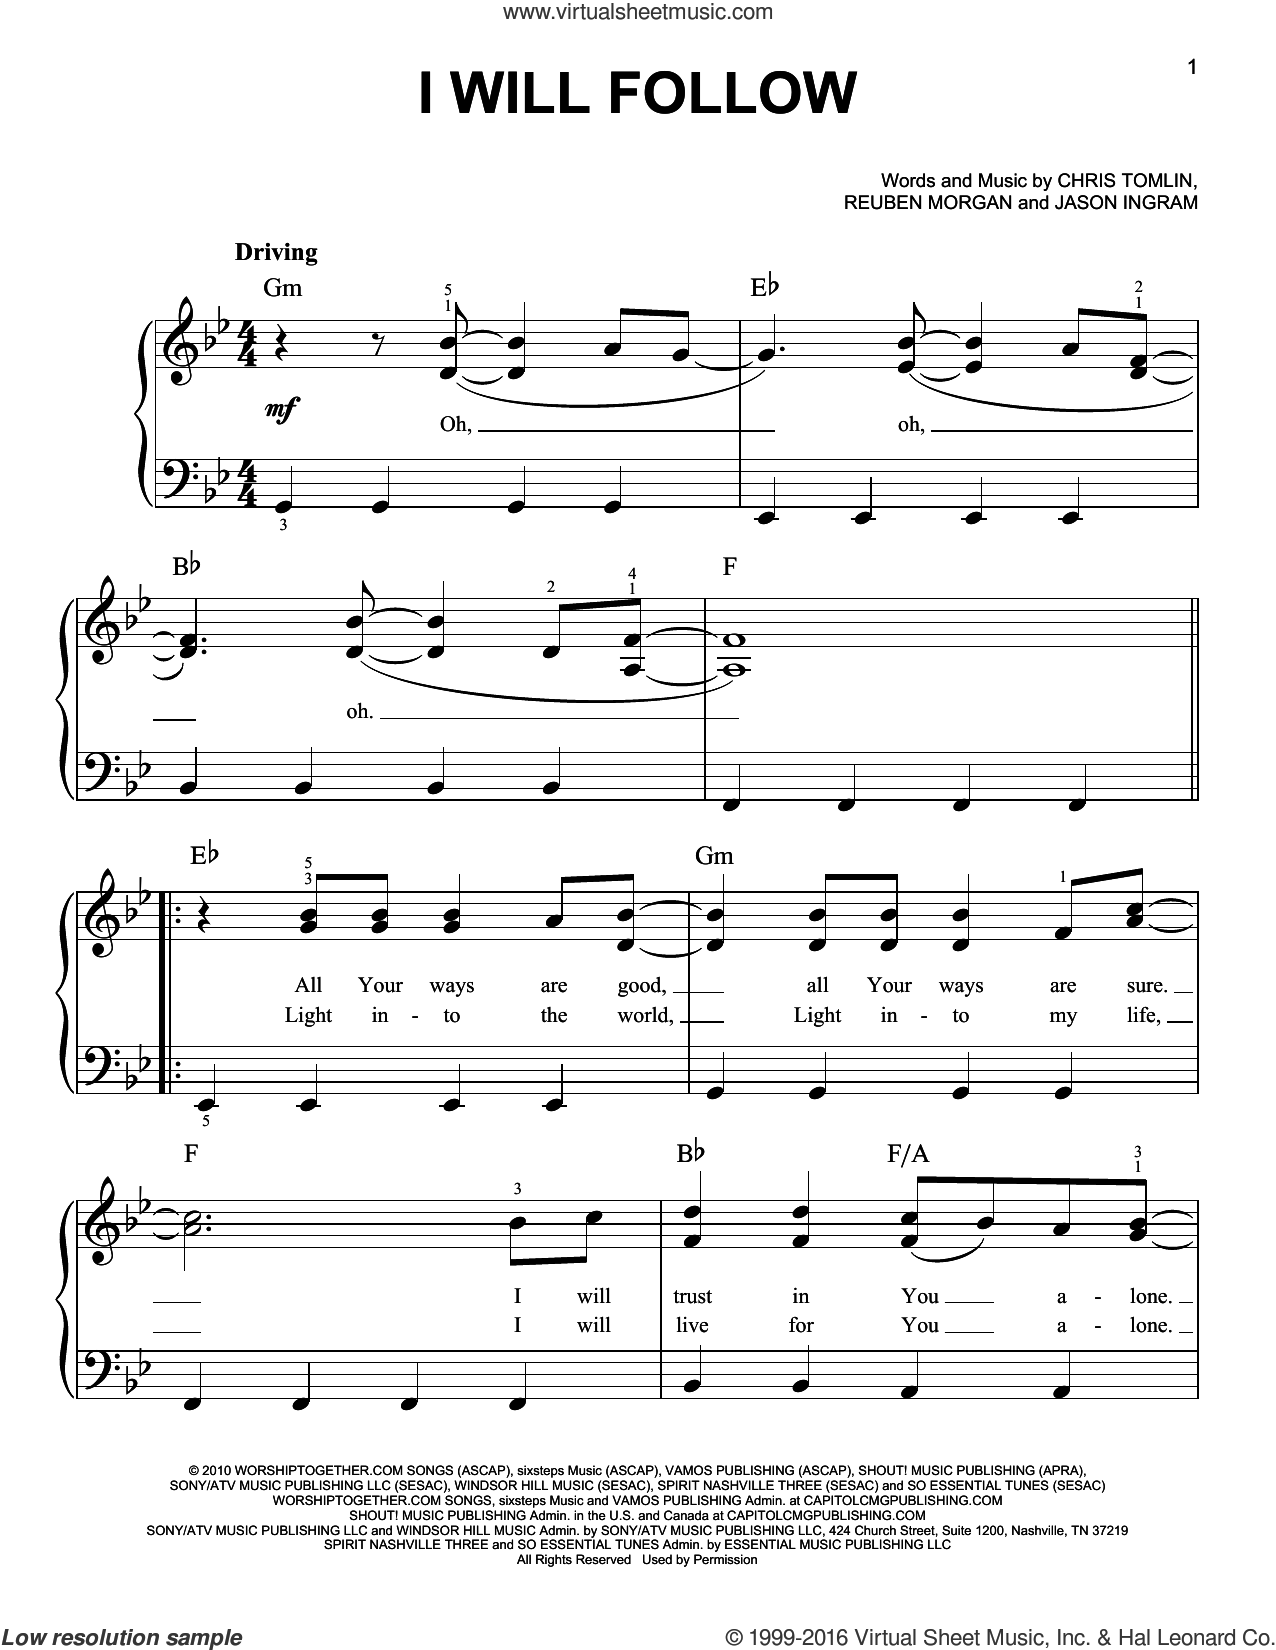 I Will Follow sheet music for piano solo by Chris Tomlin, Jason Ingram and Reuben Morgan, easy skill level